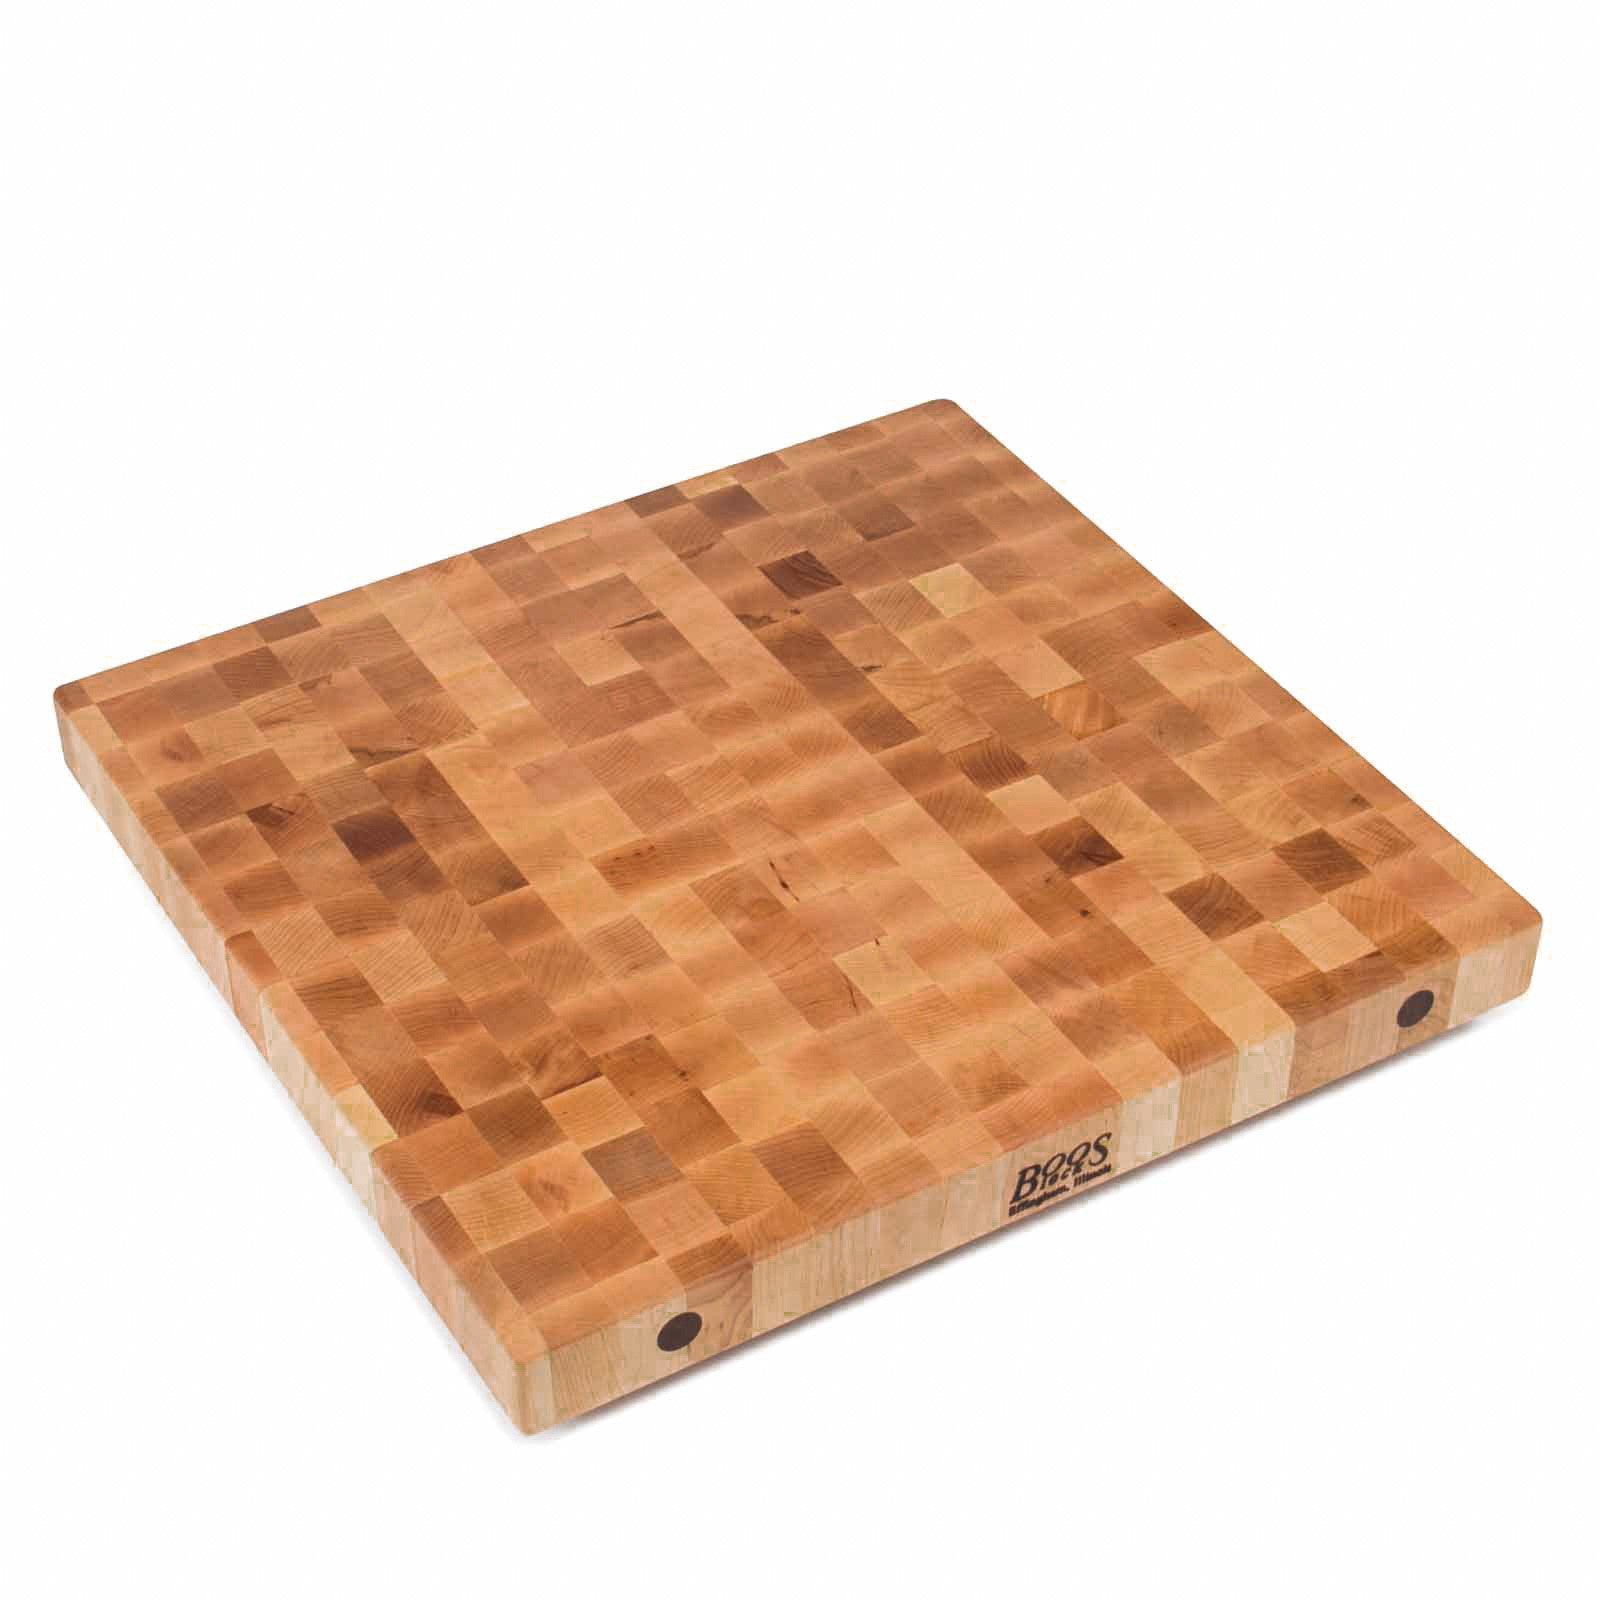 "John Boos 2 1/4"" Thick End Grain Maple Butcher Block Island Top - 38"" Wide"